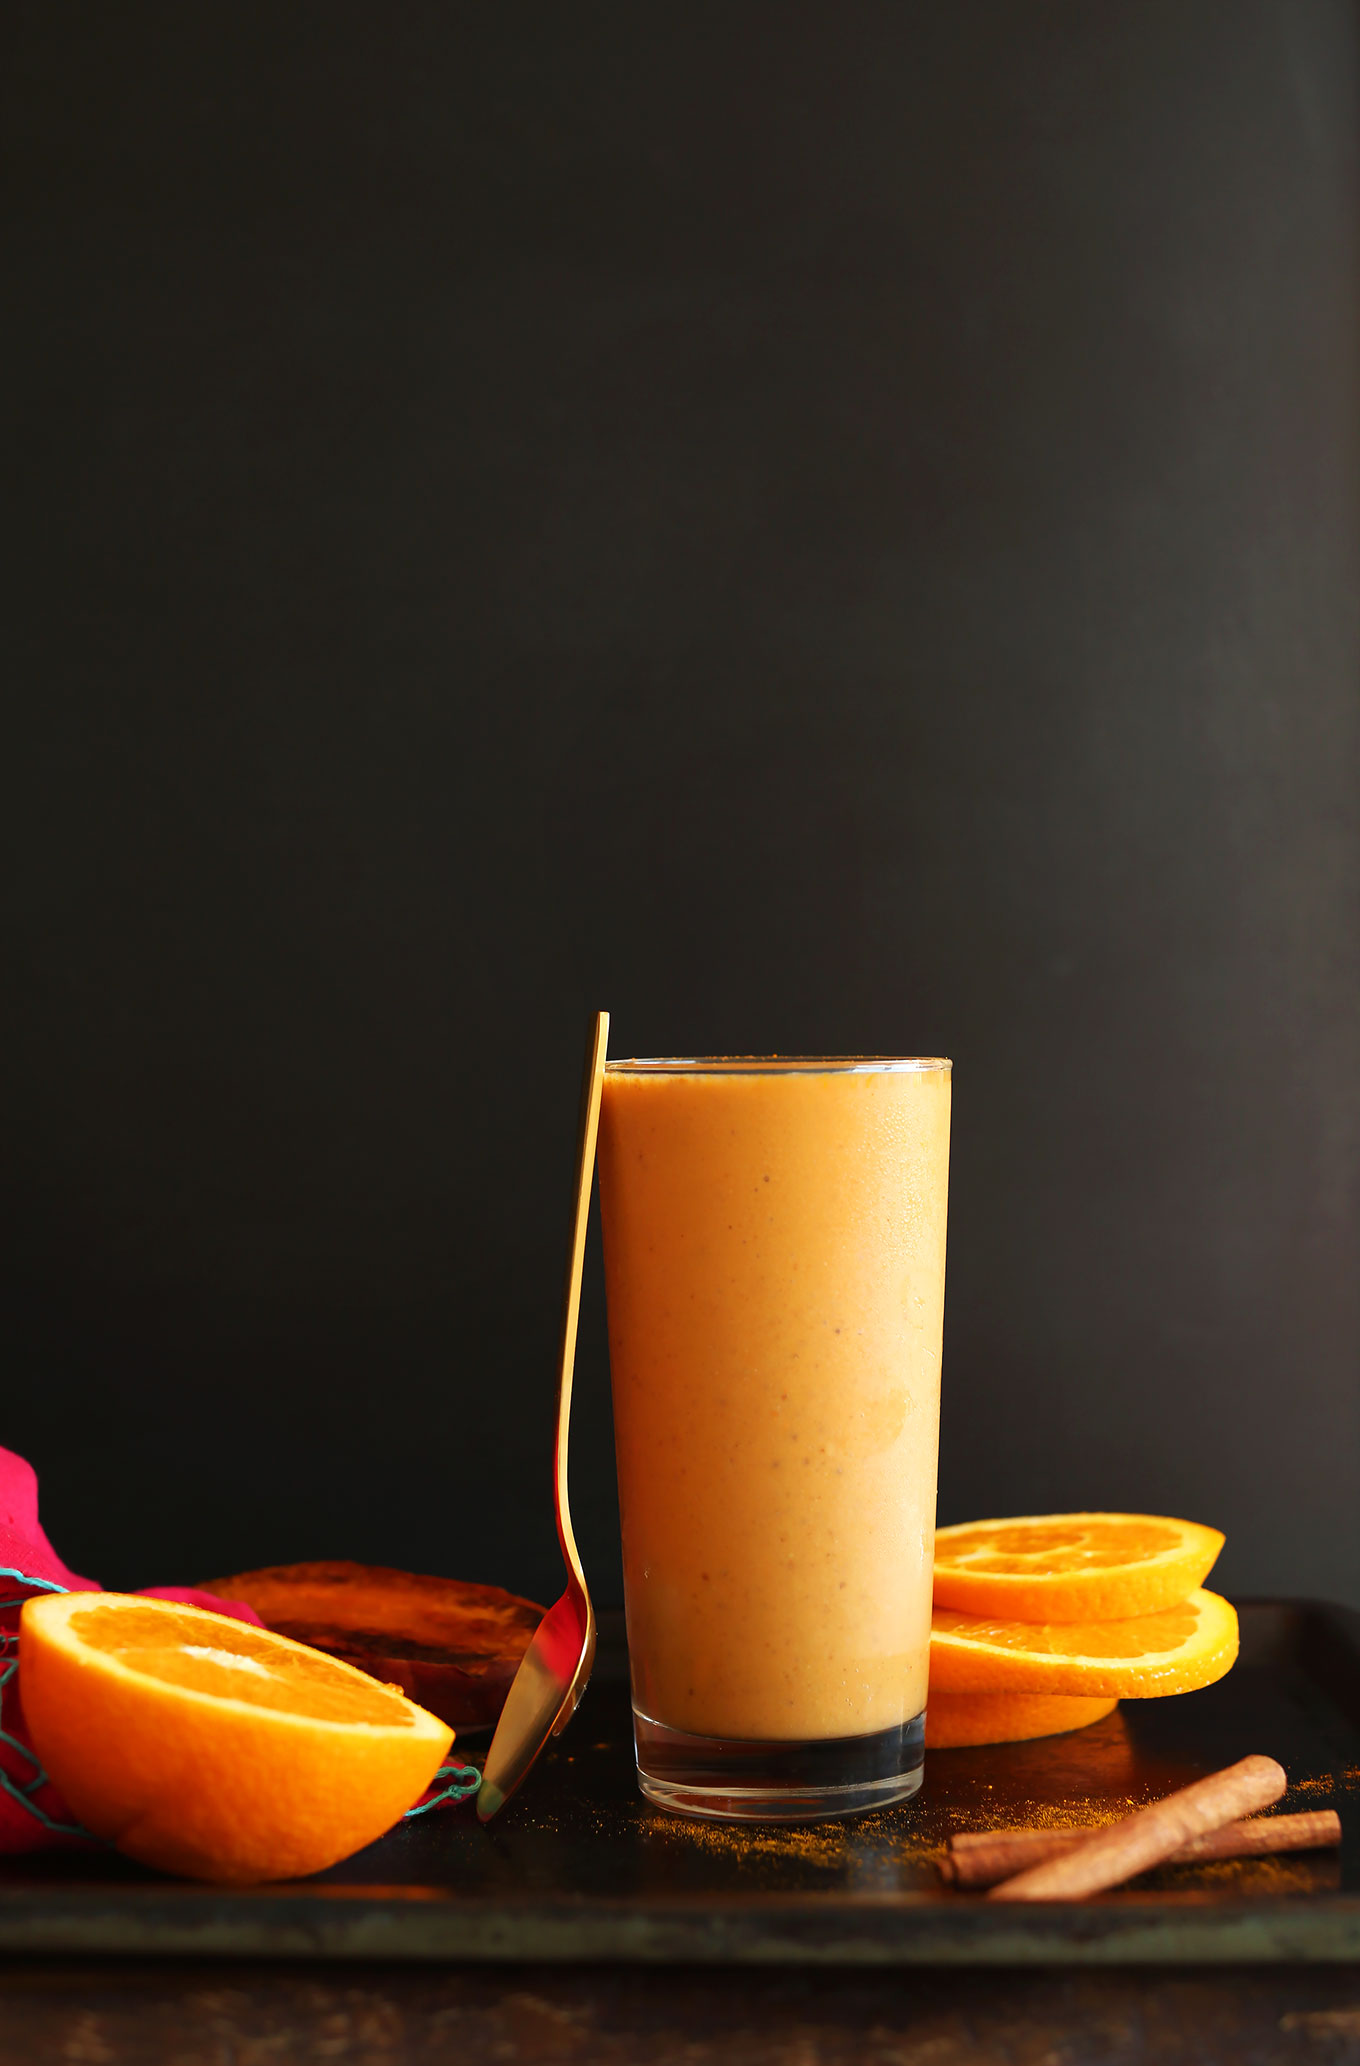 Spoon resting on a glass filled with our Creamy Sweet Potato Smoothie recipe